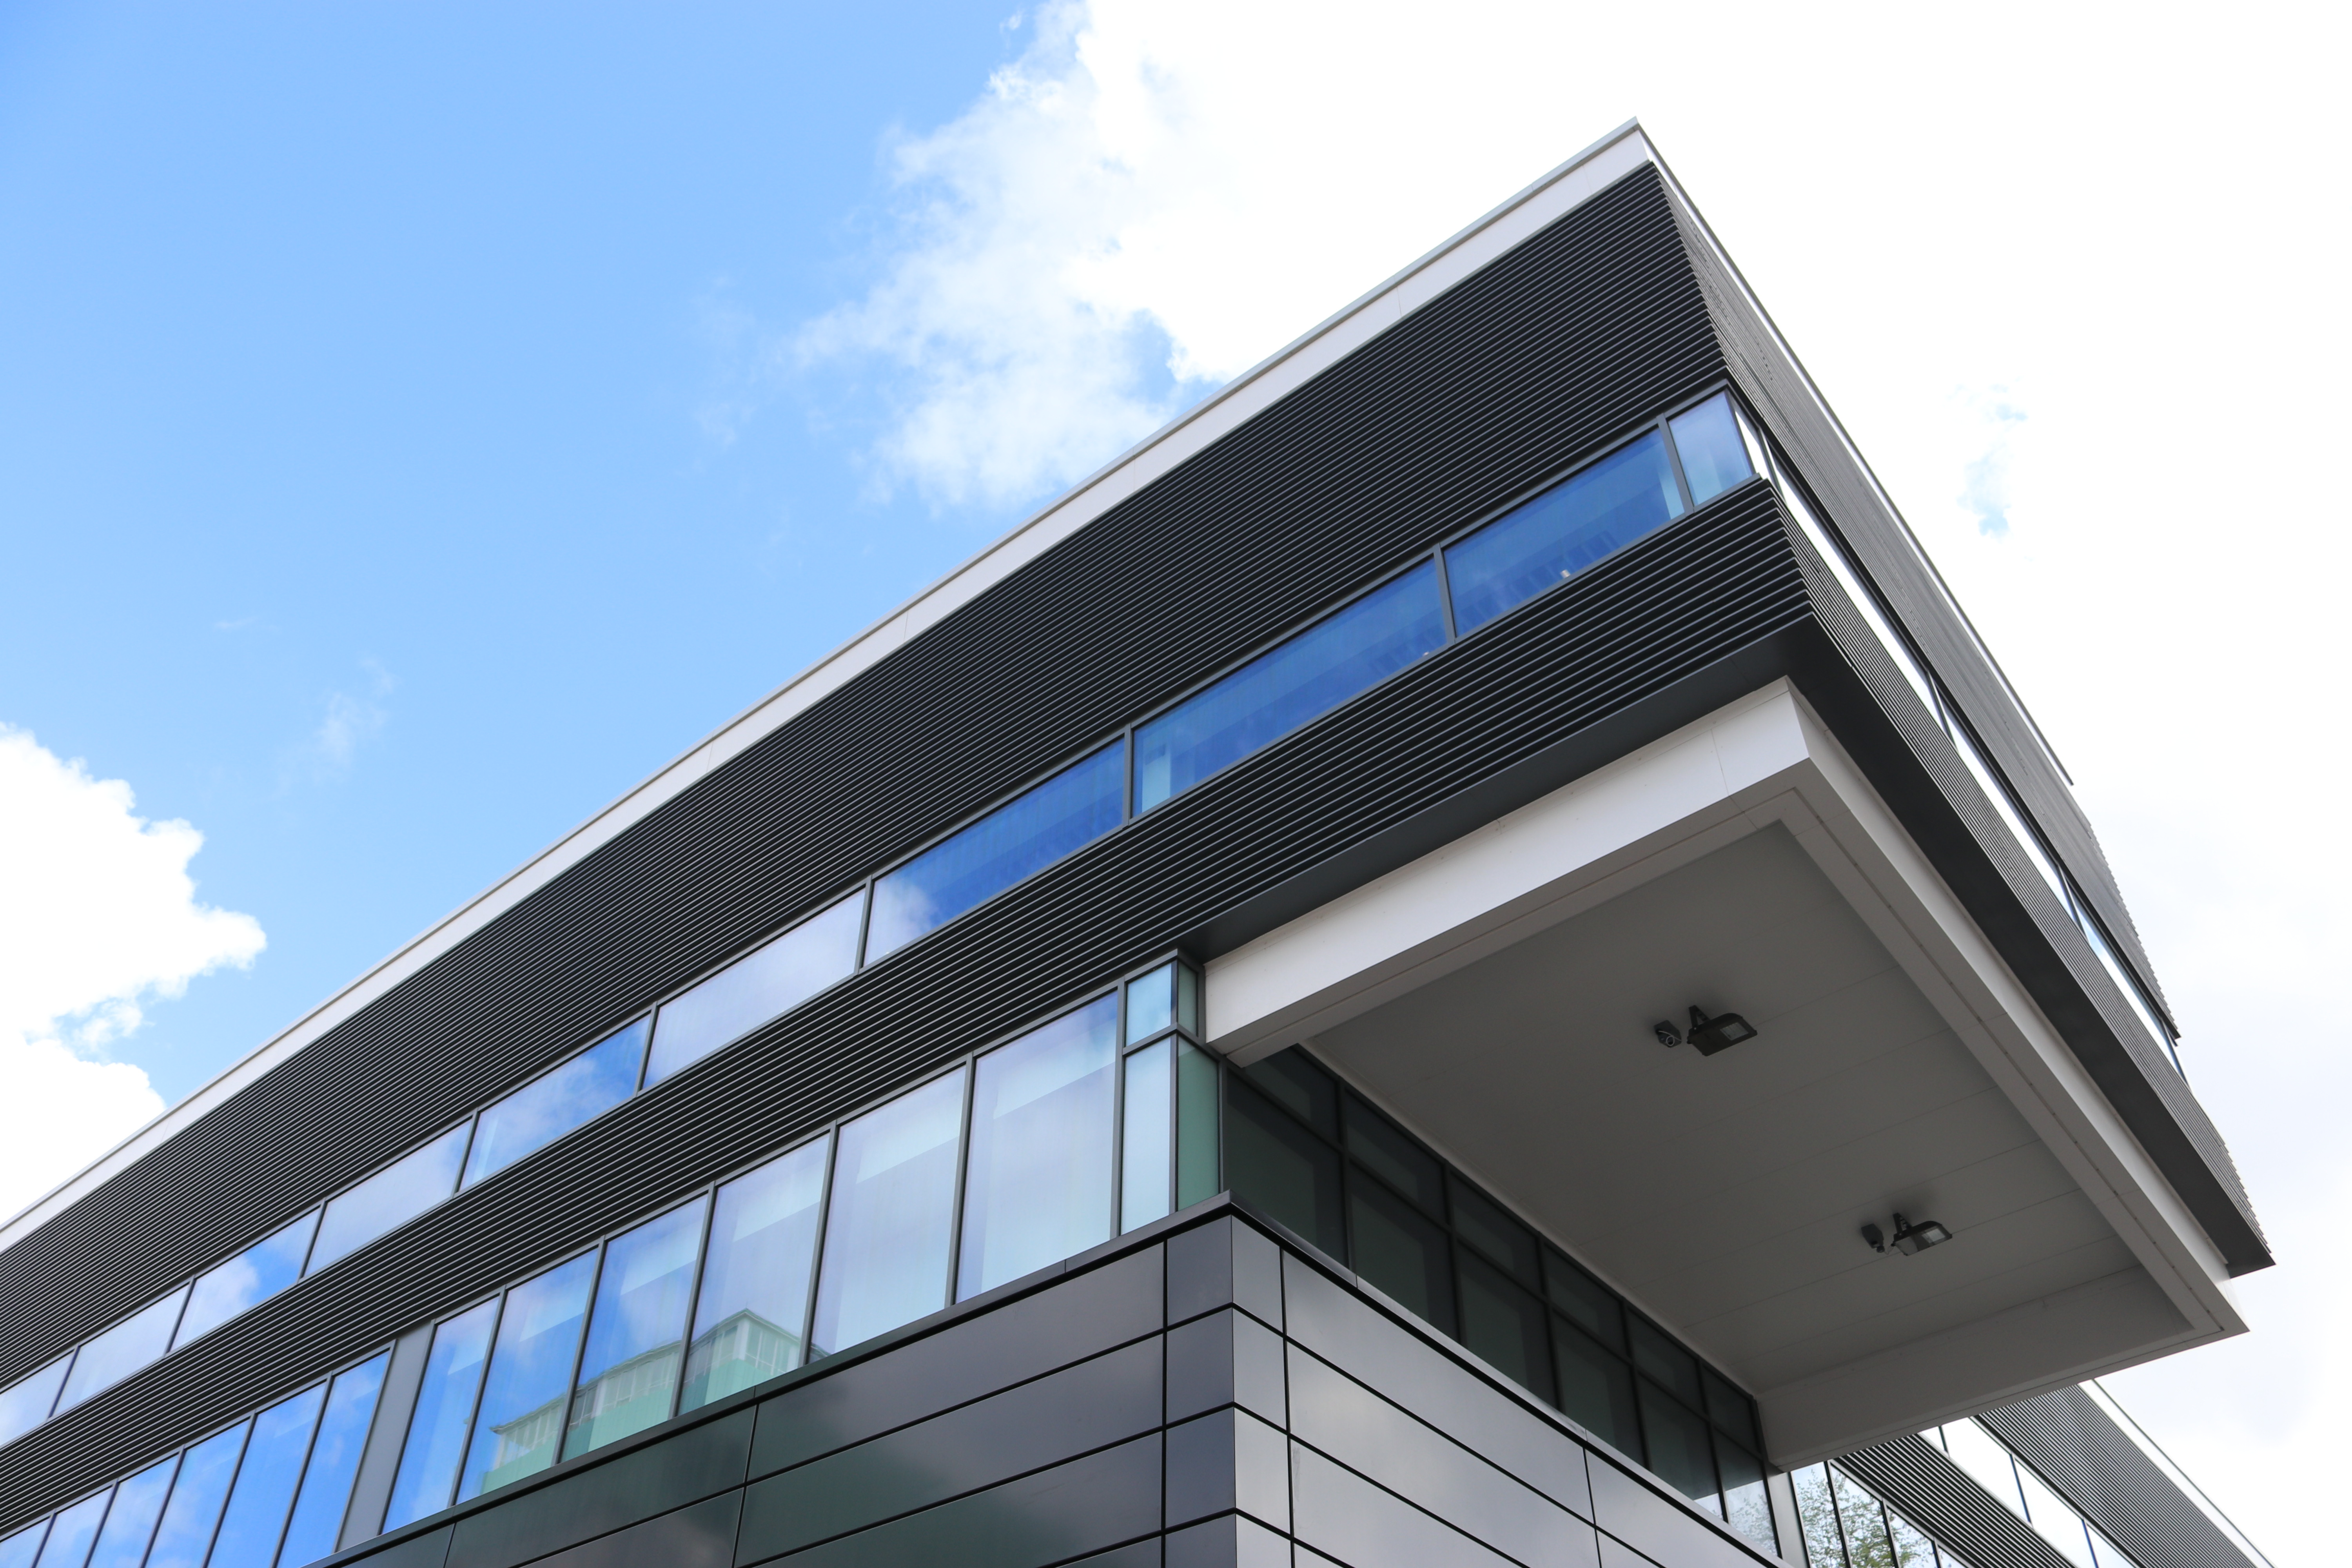 Graphene Engineering Innovation Centre